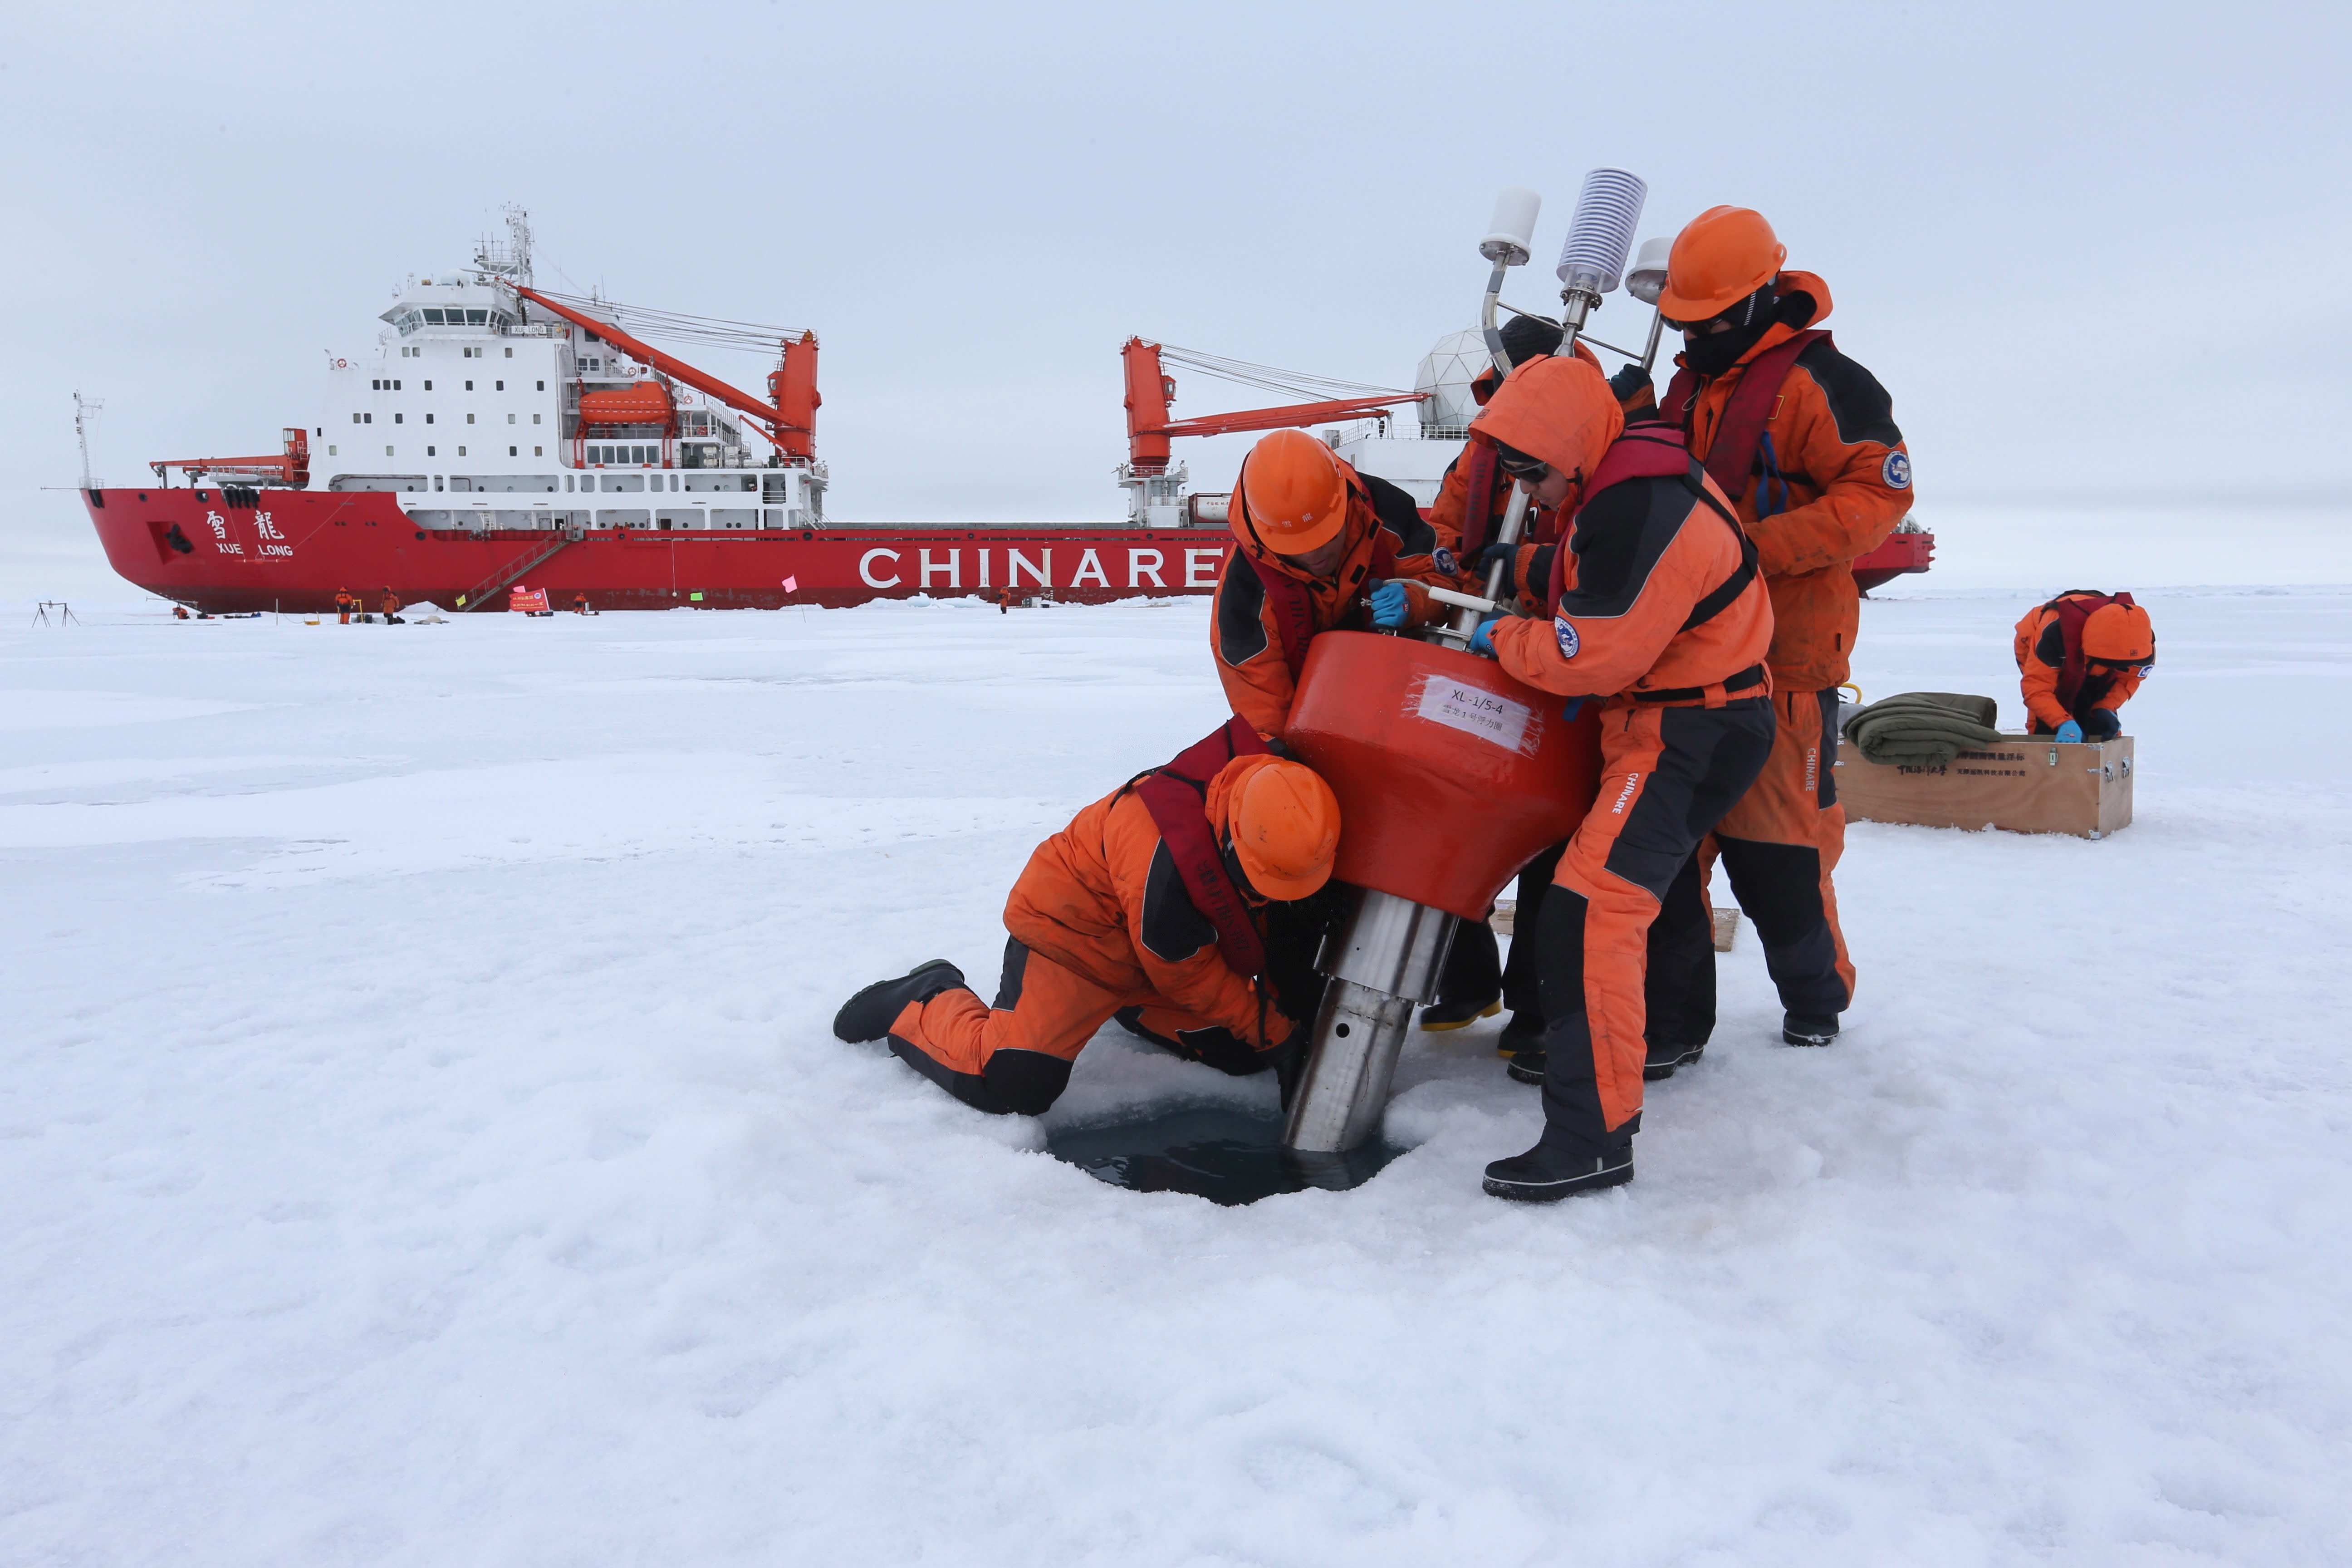 NATO is carefully monitoring the 'security implications' of China's increased presence in the Arctic